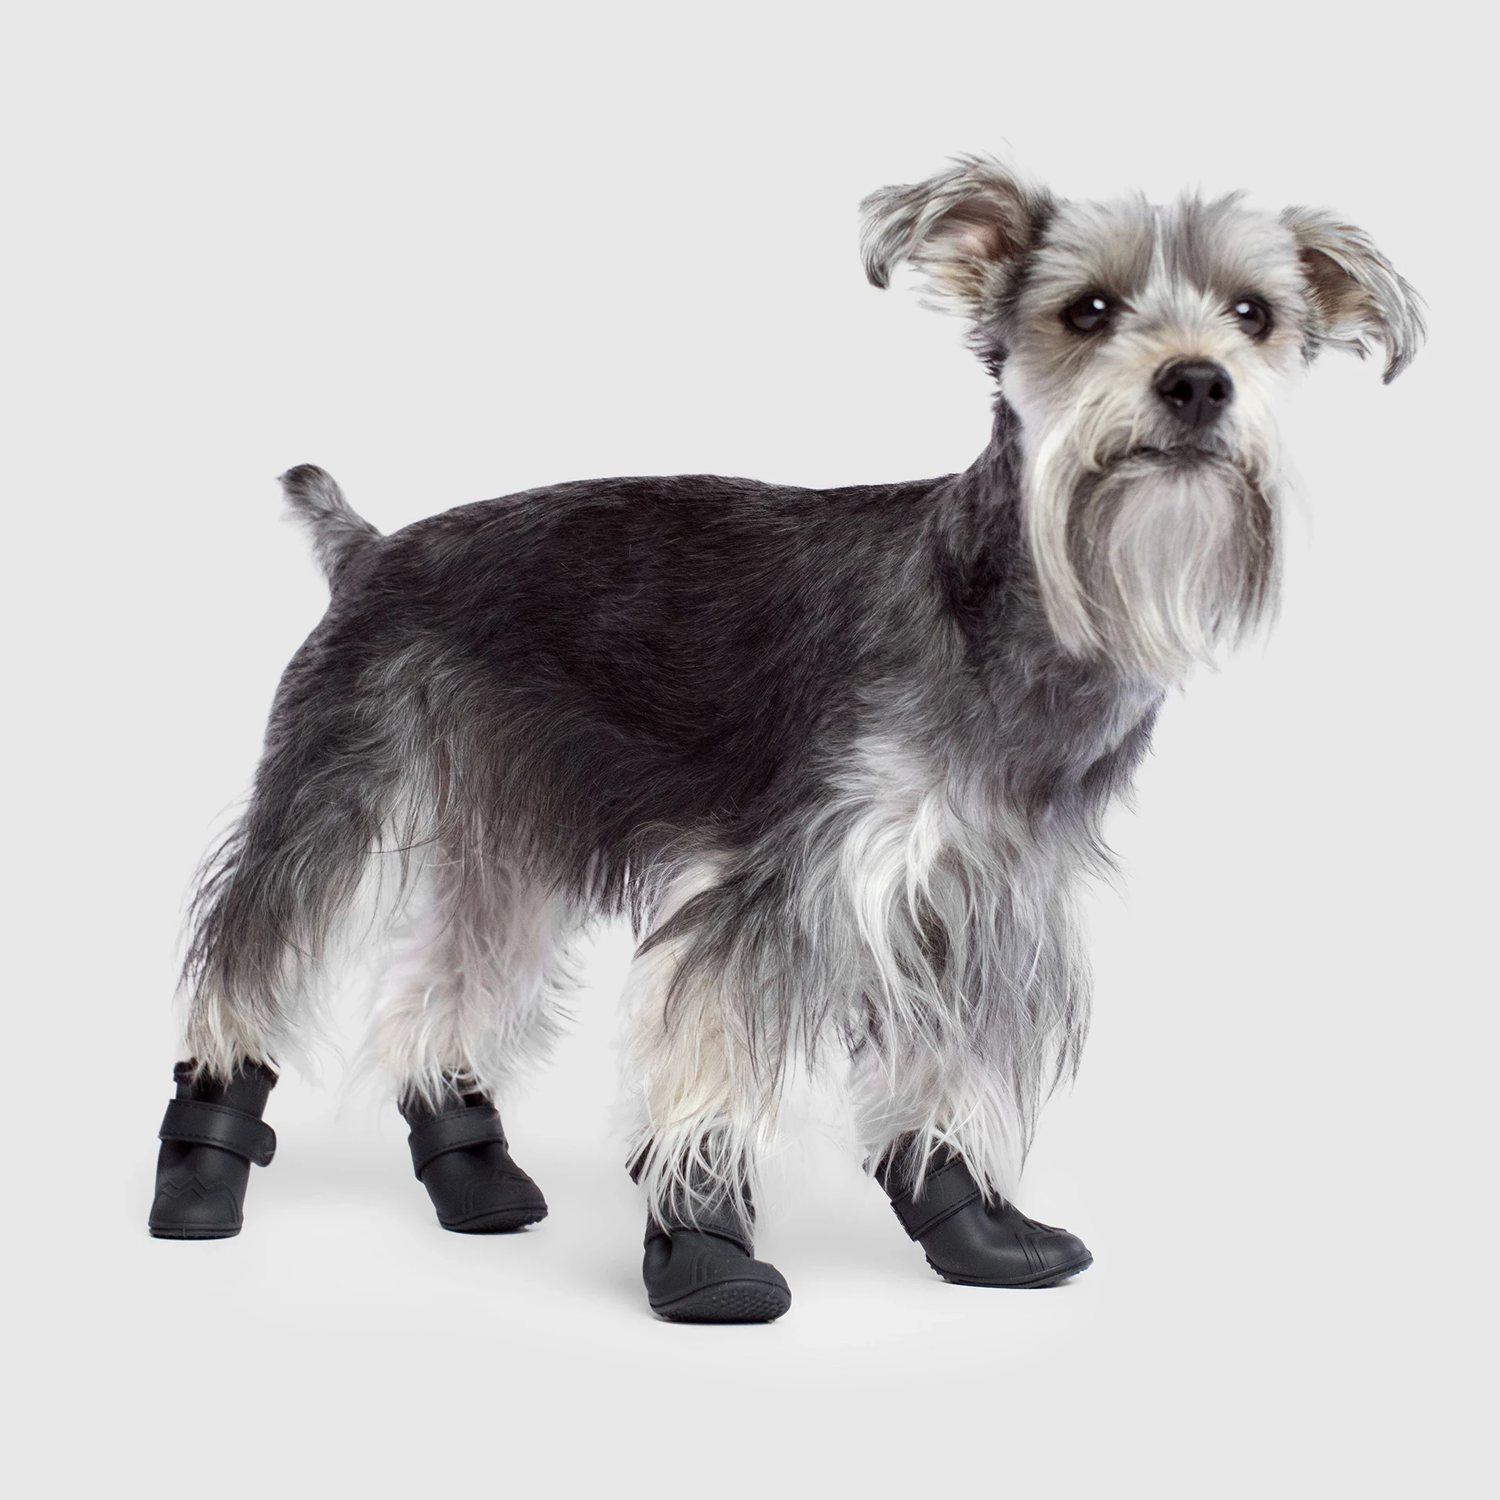 Lined Wellies Dog Boots: Black